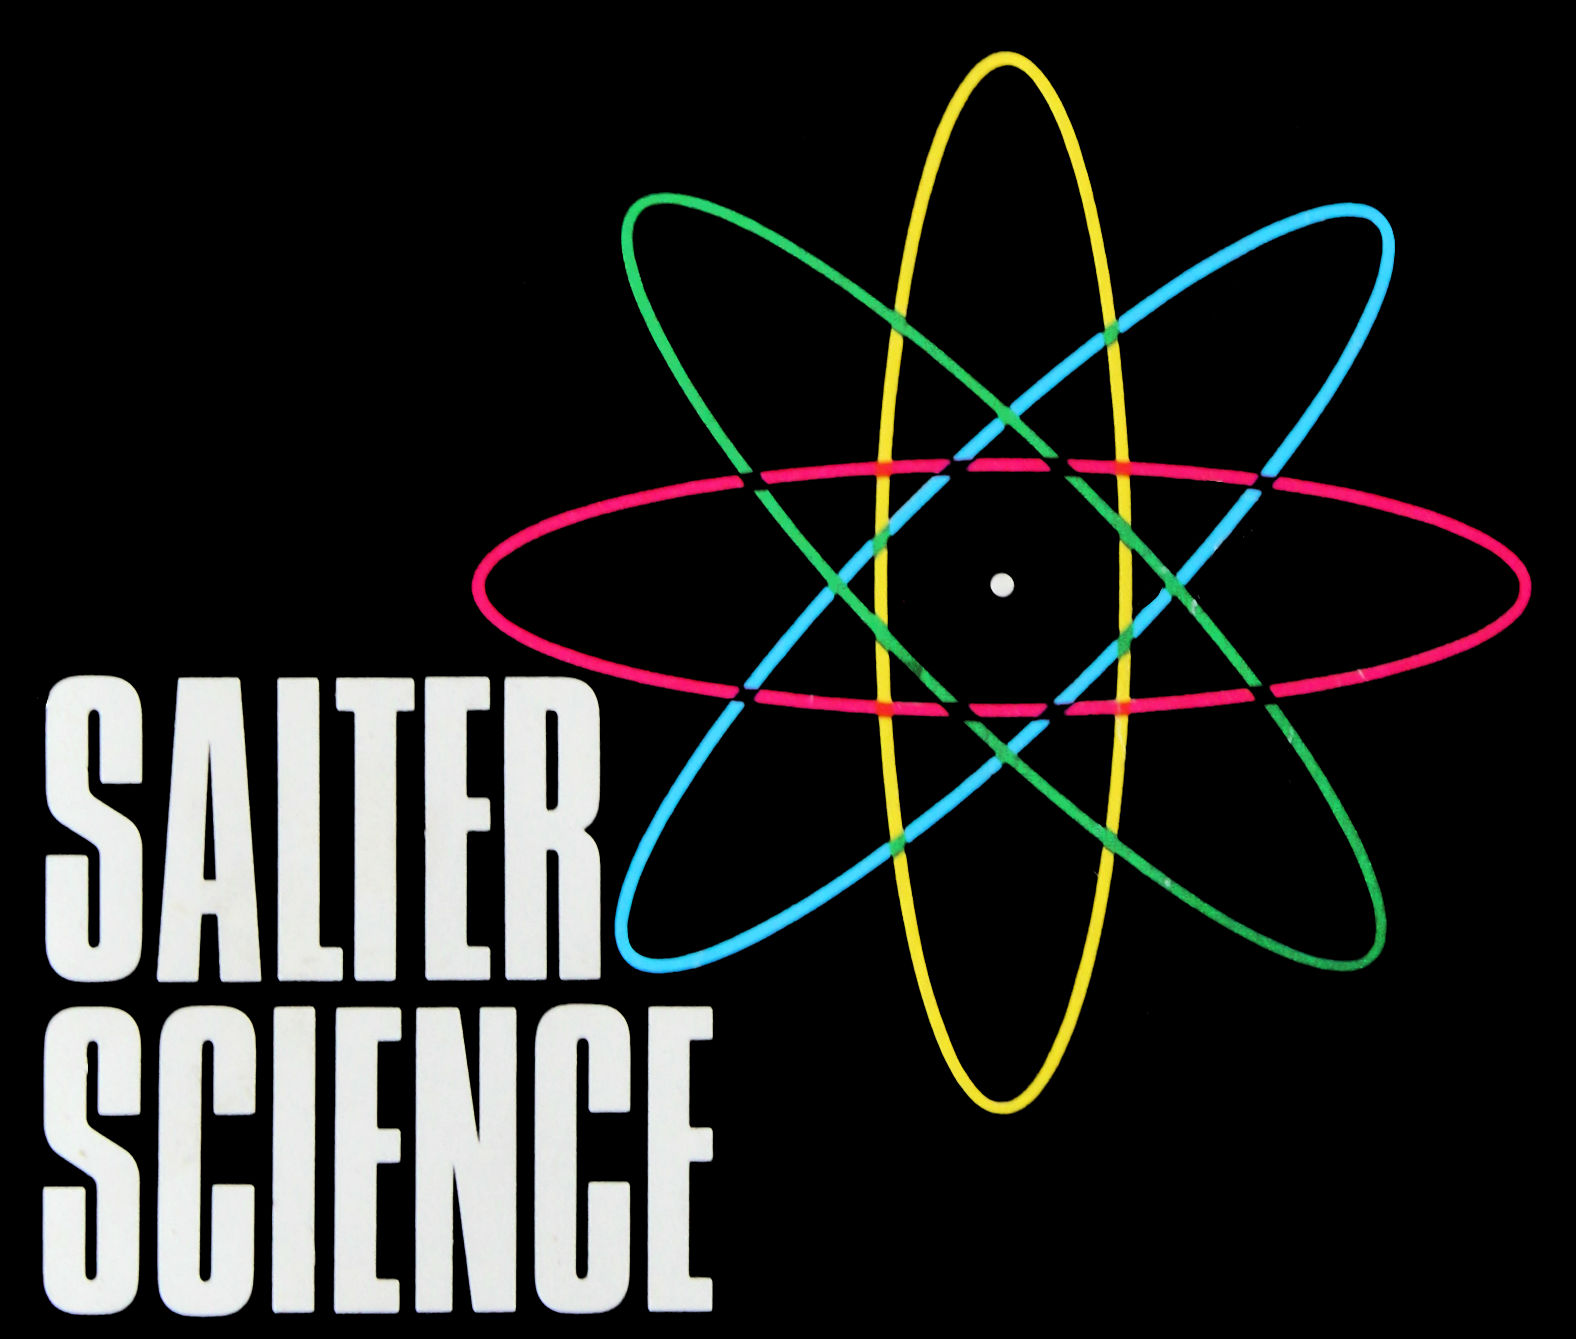 science salter chemistry wikipedia